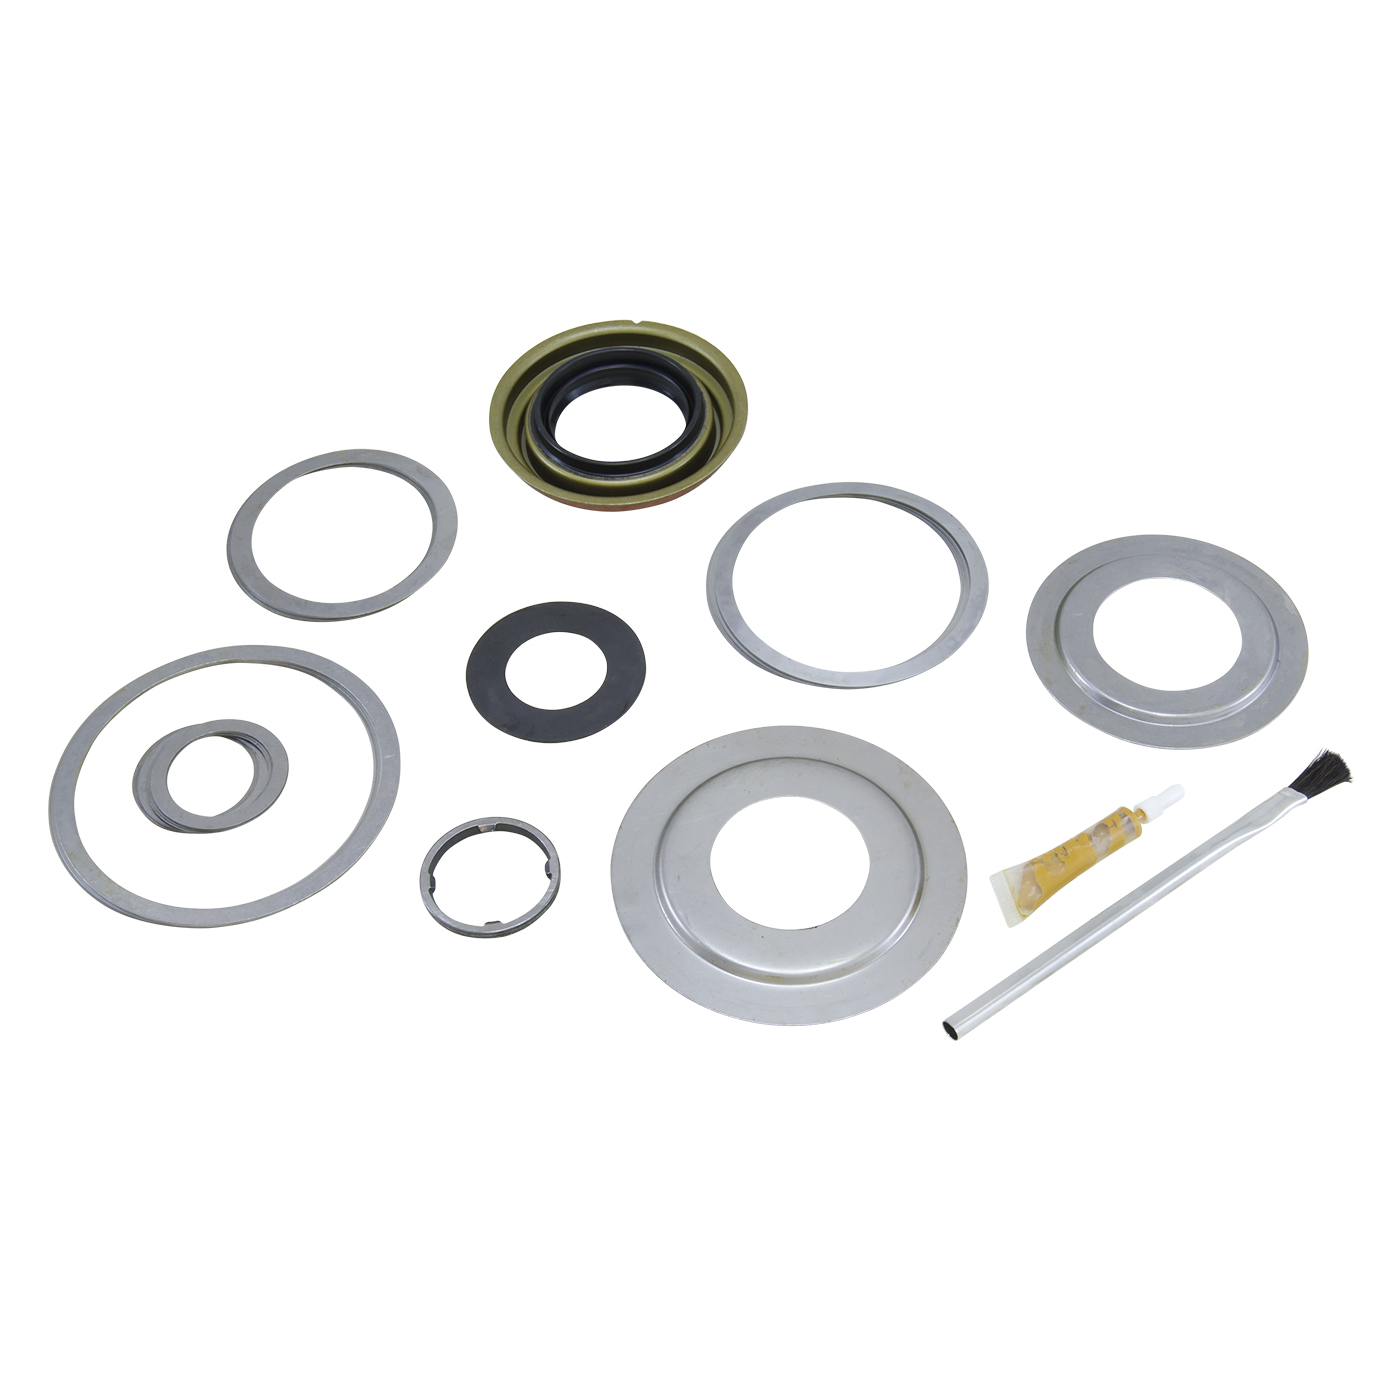 MK D70 - Yukon Minor install kit for Dana 70 differential